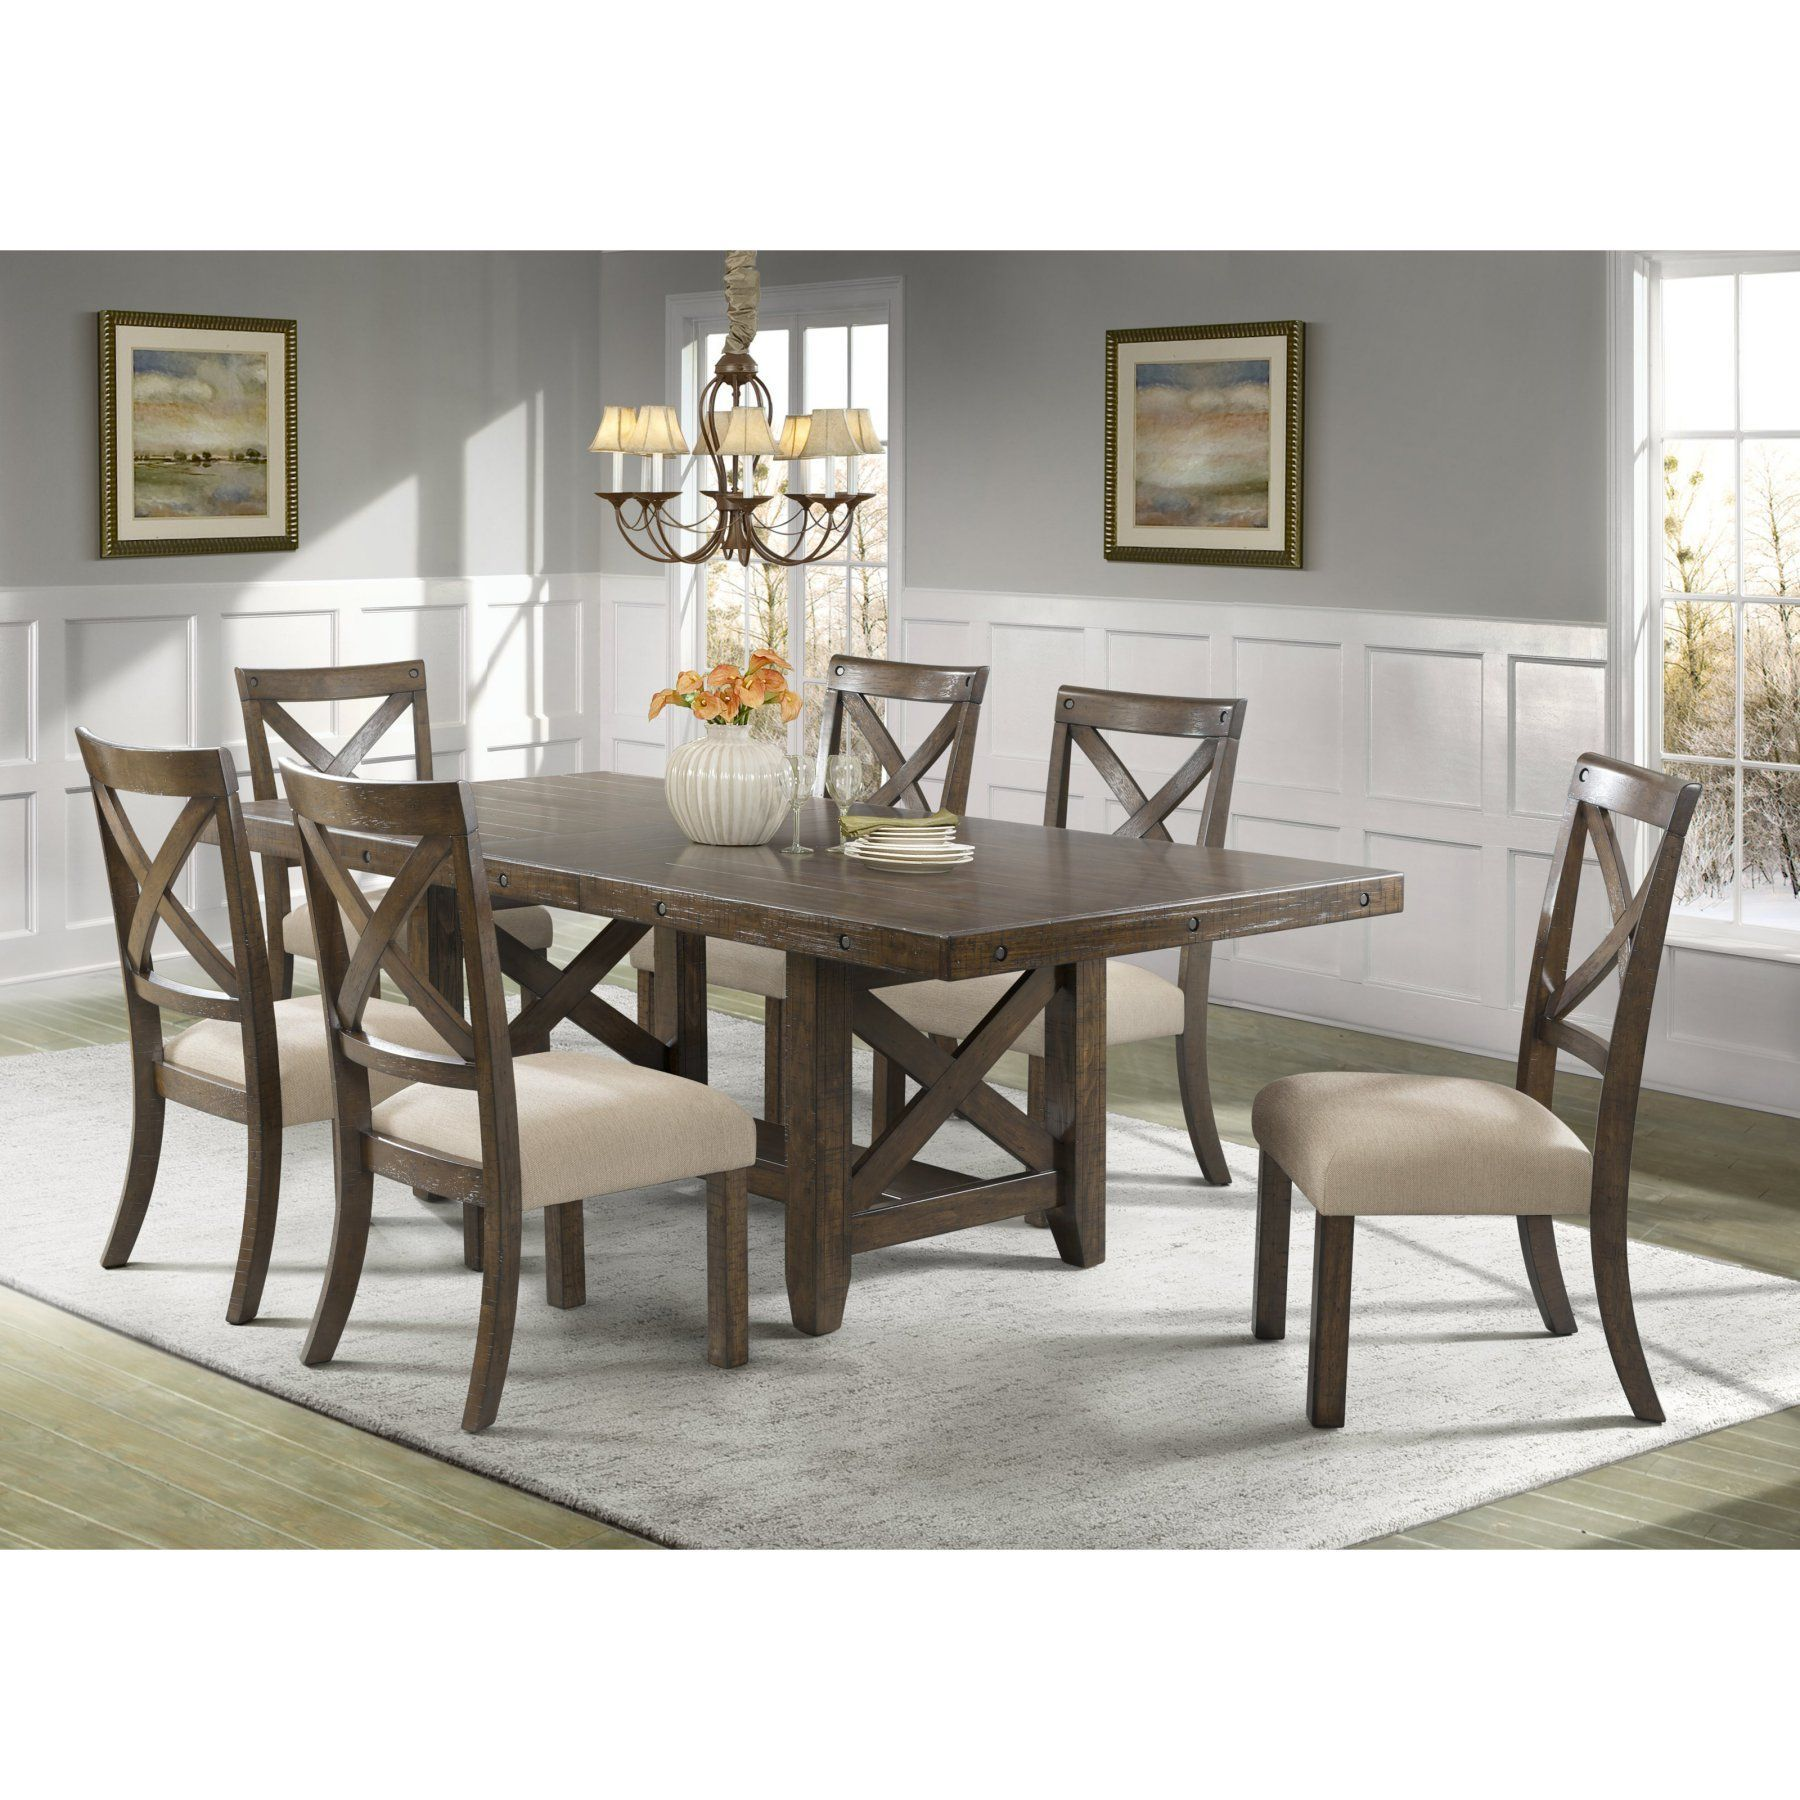 Dining room table with upholstered bench  Picket House Francis  Piece Cross Back Dining Table Set